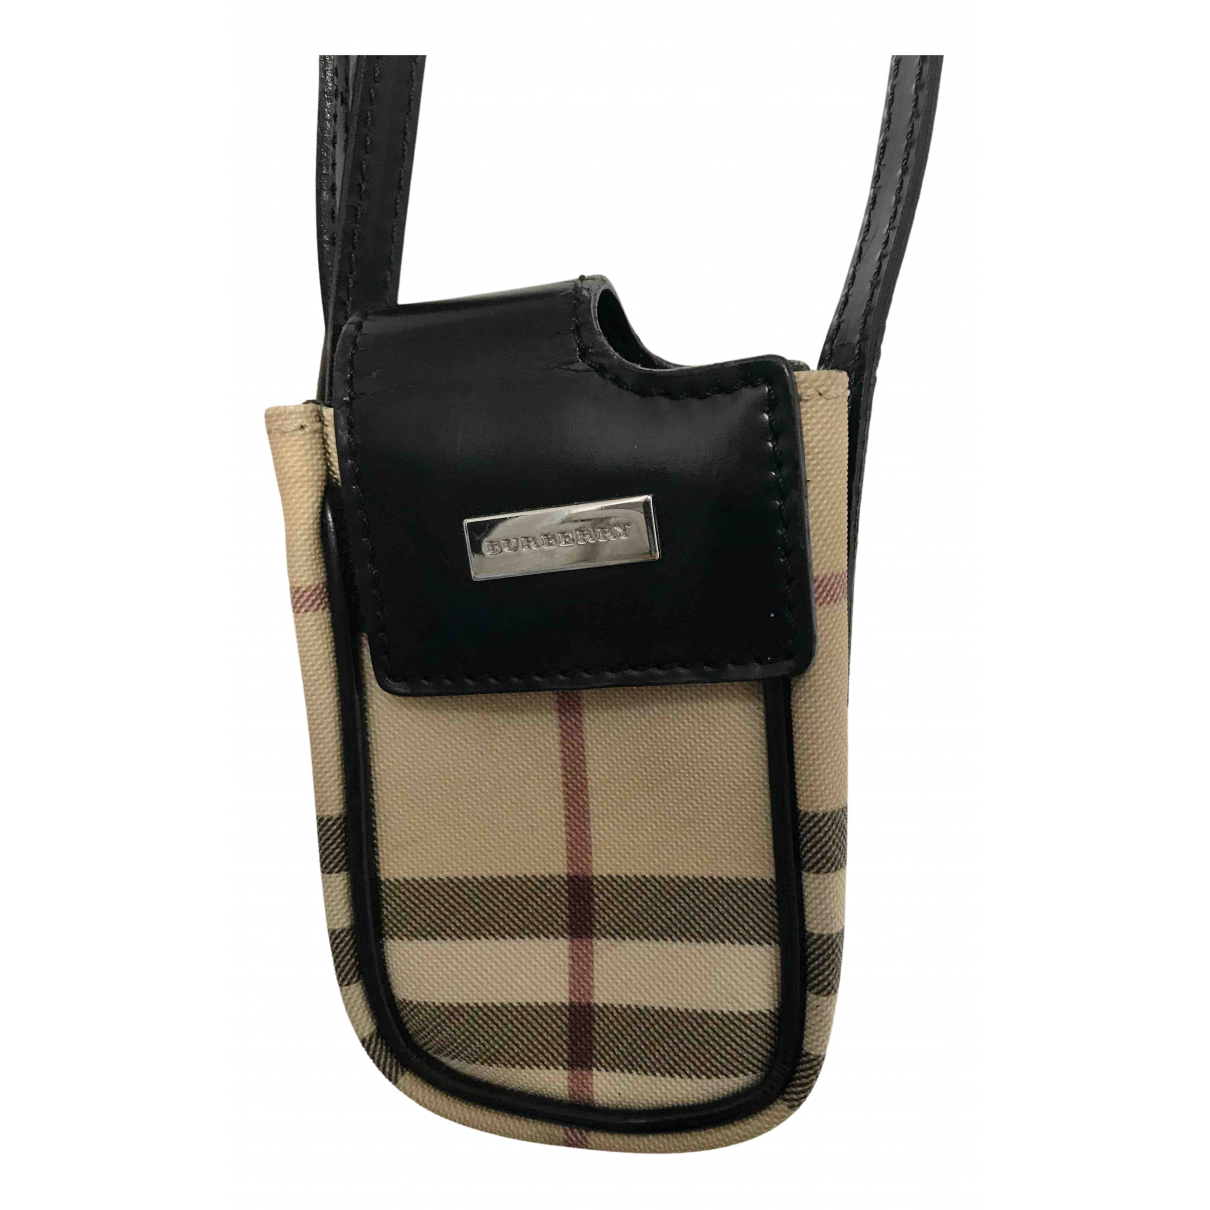 Burberry N Multicolour Cloth Purses, wallet & cases for Women N